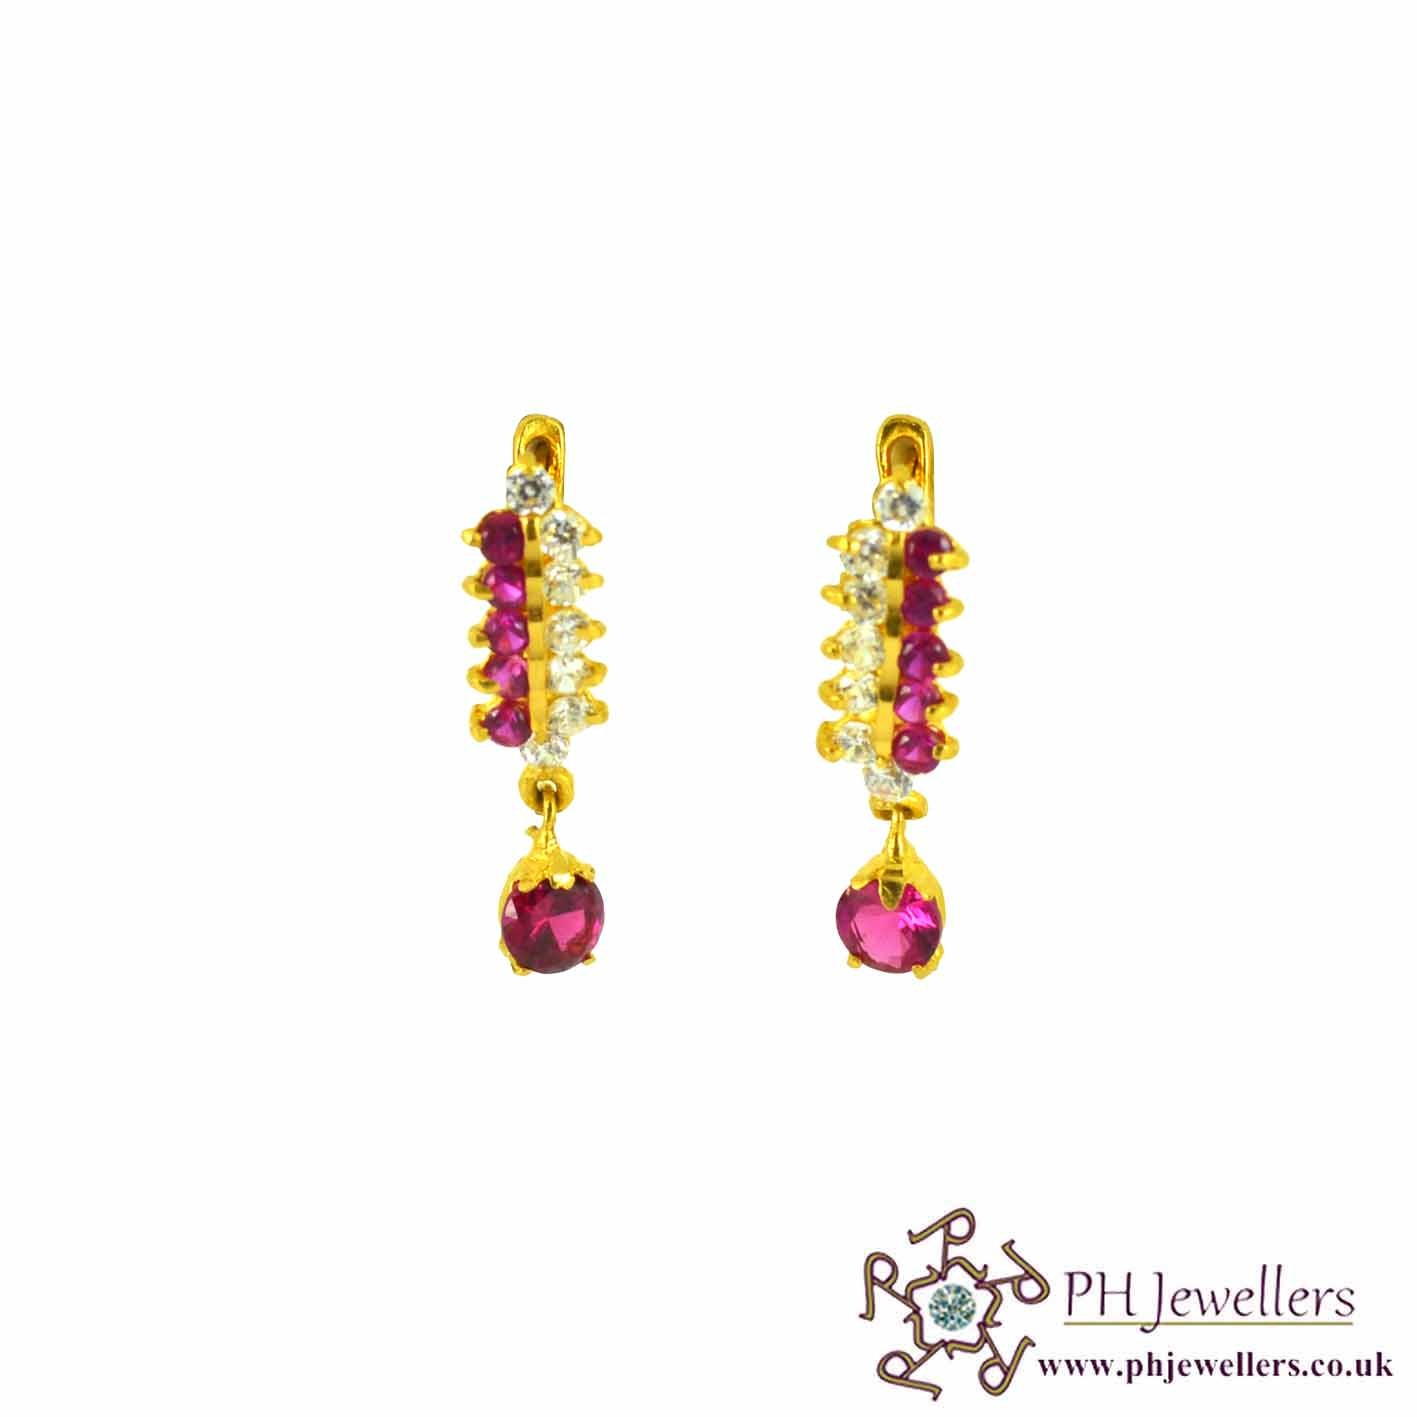 22ct 916 Hallmark Yellow Gold Clip On Ruby Red & White Earring CZ CE2